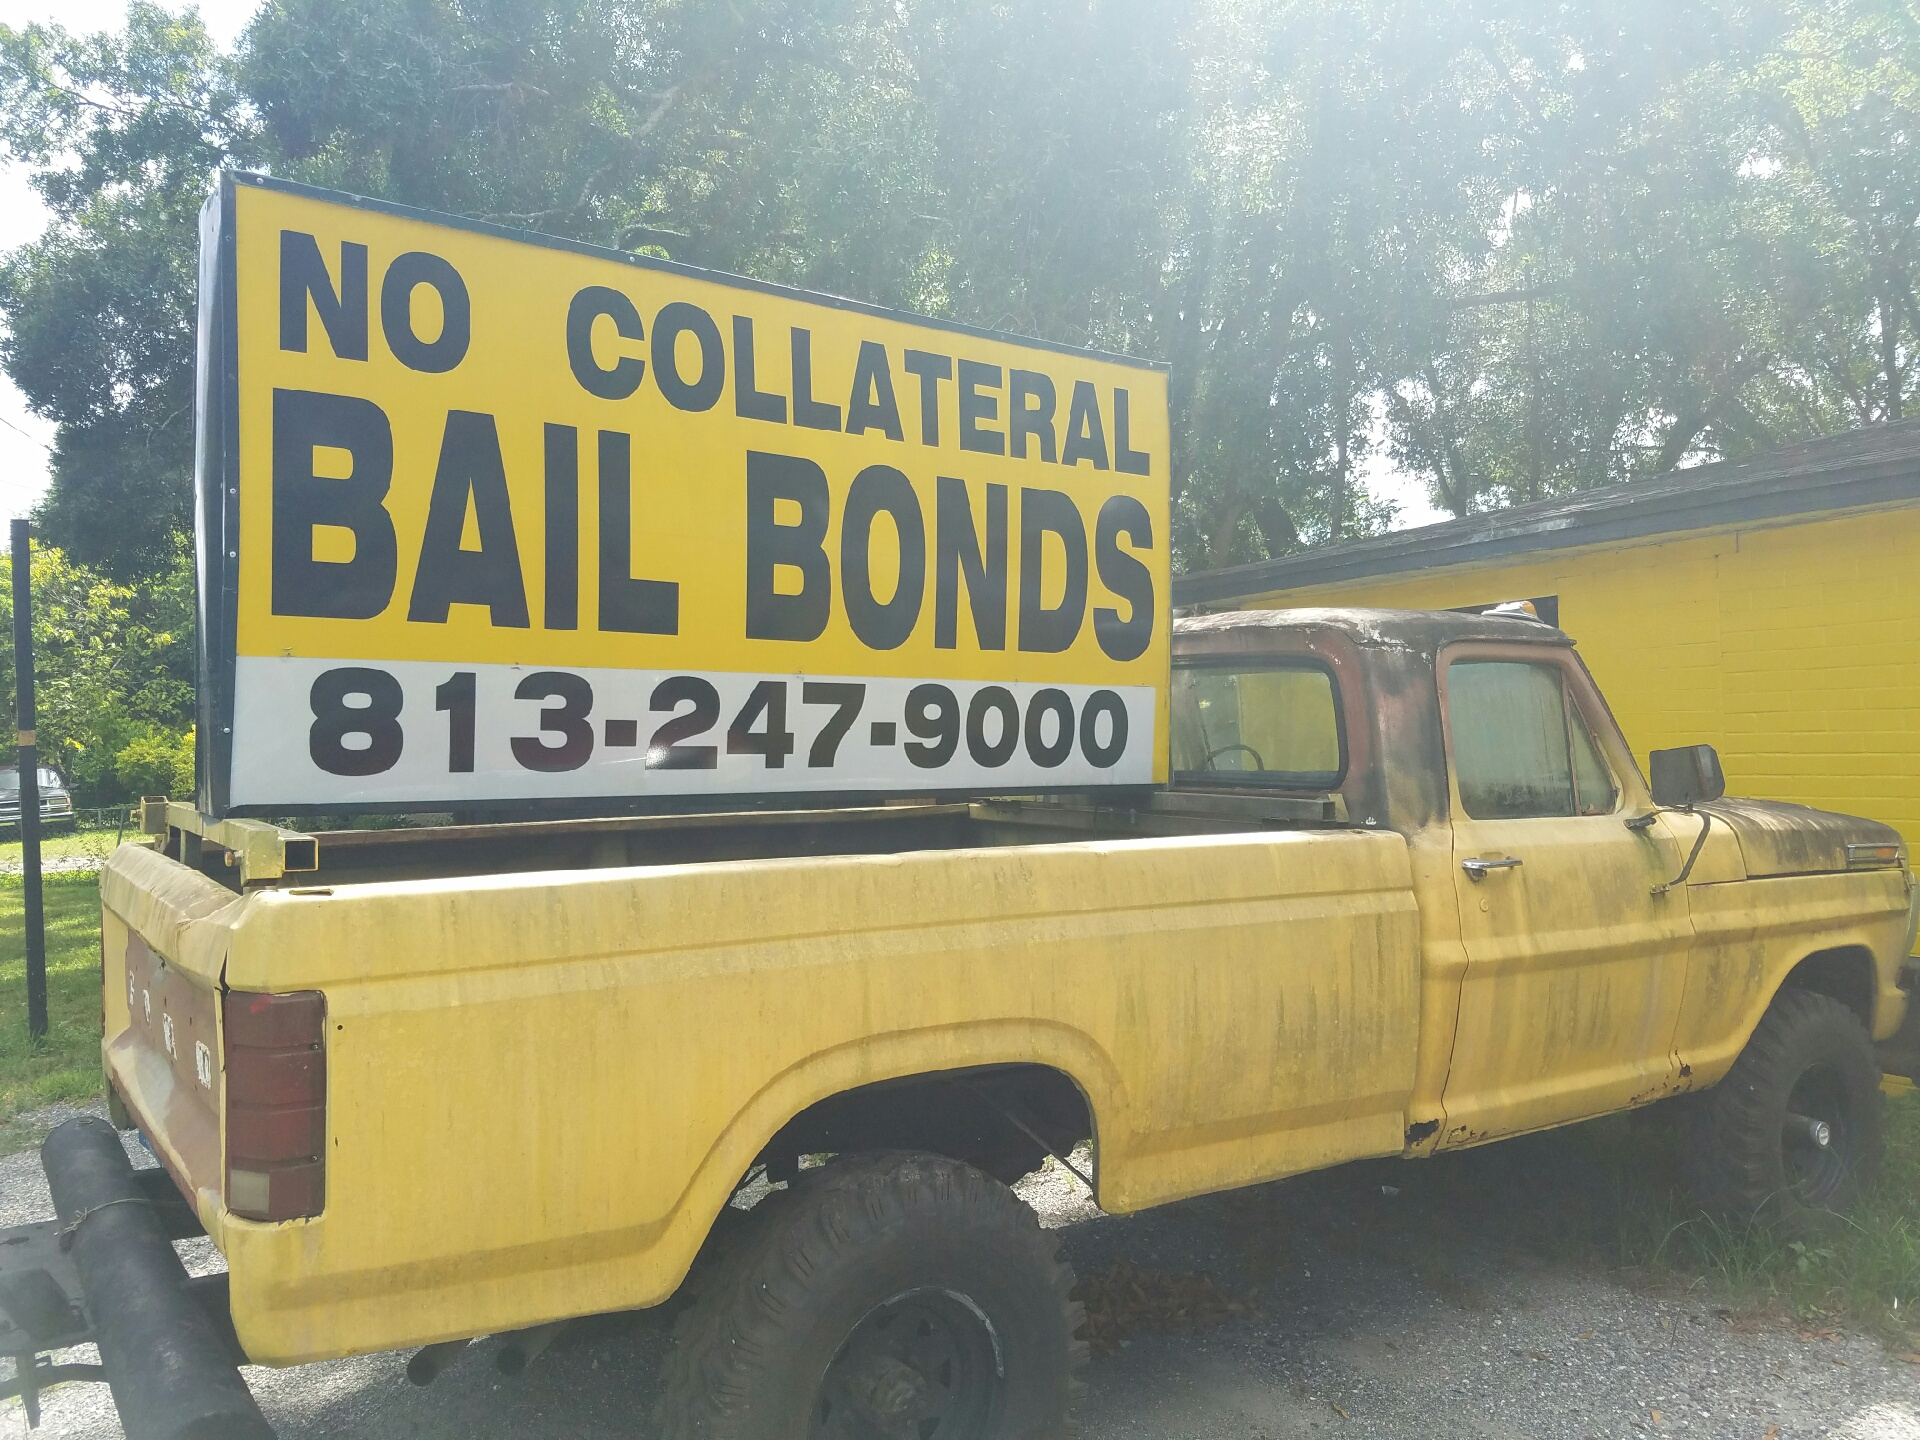 No Collateral Bail Bonds Corp. image 2